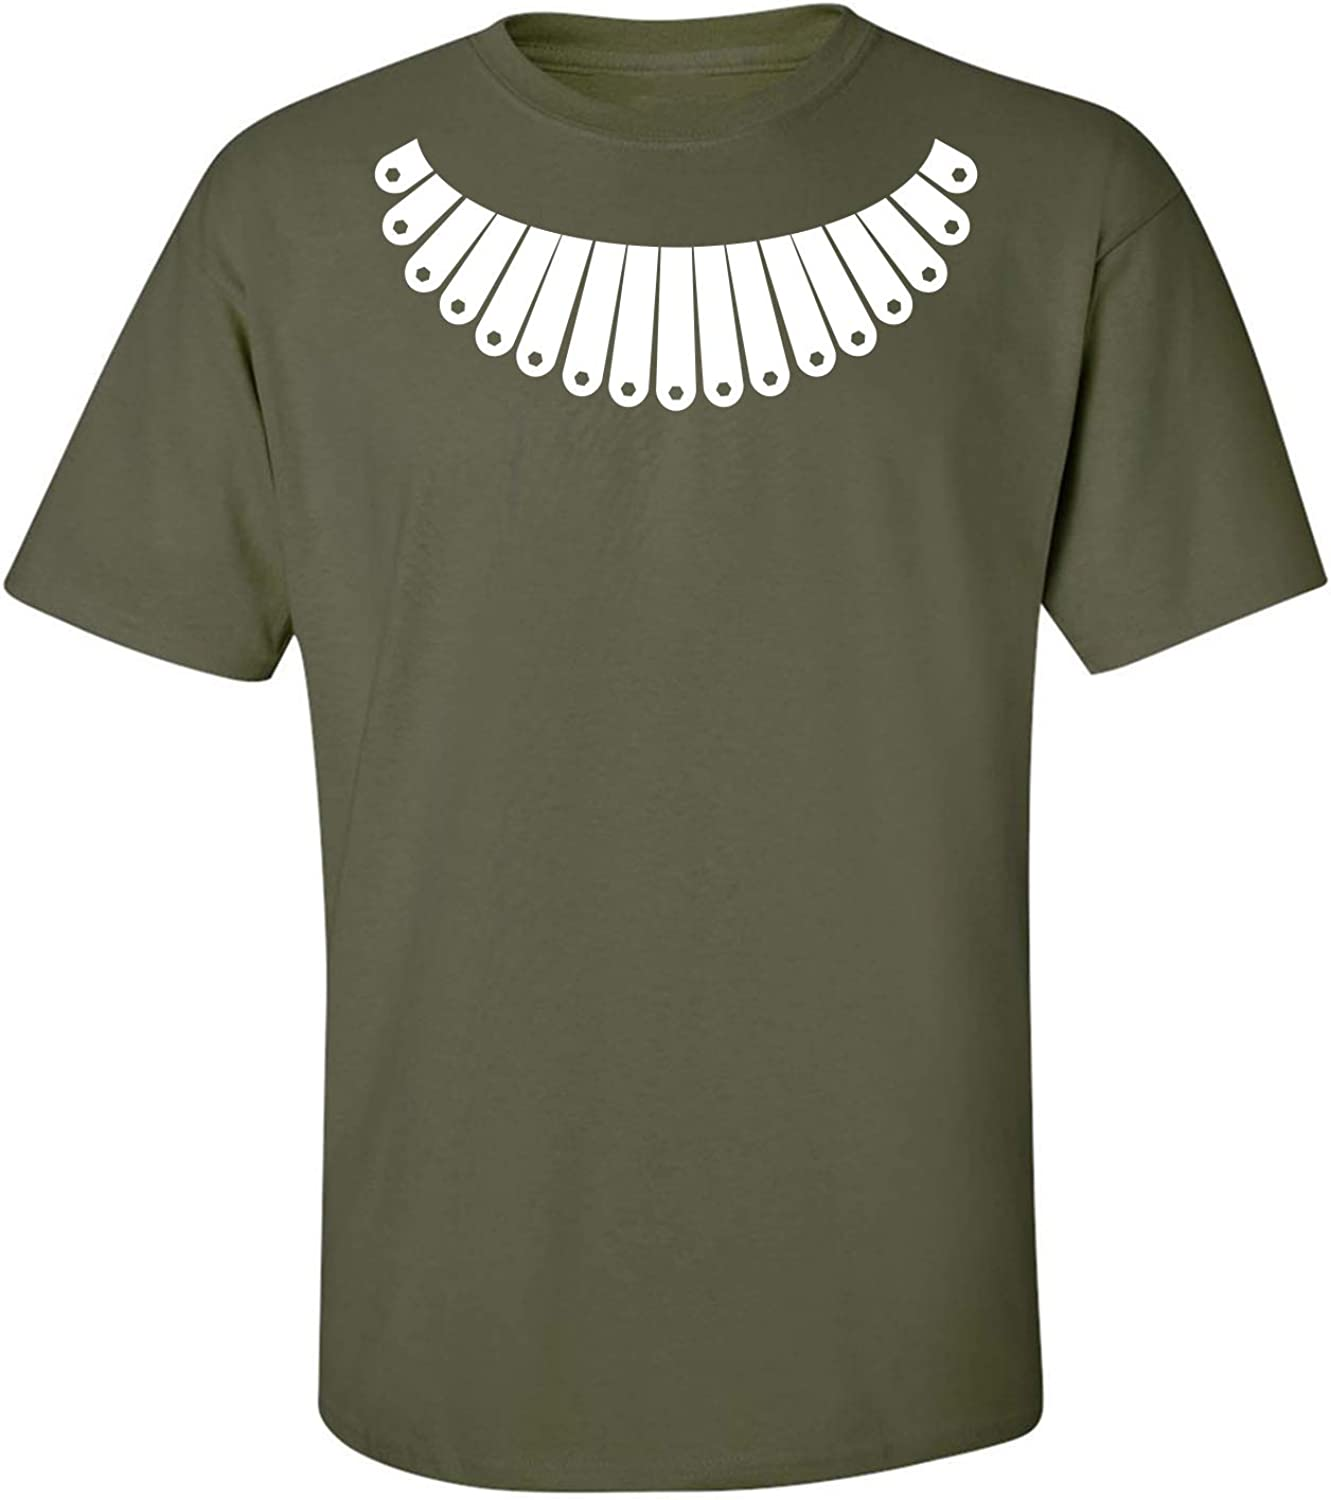 RBG Collar Adult T-Shirt in Military Green - XXXX-Large